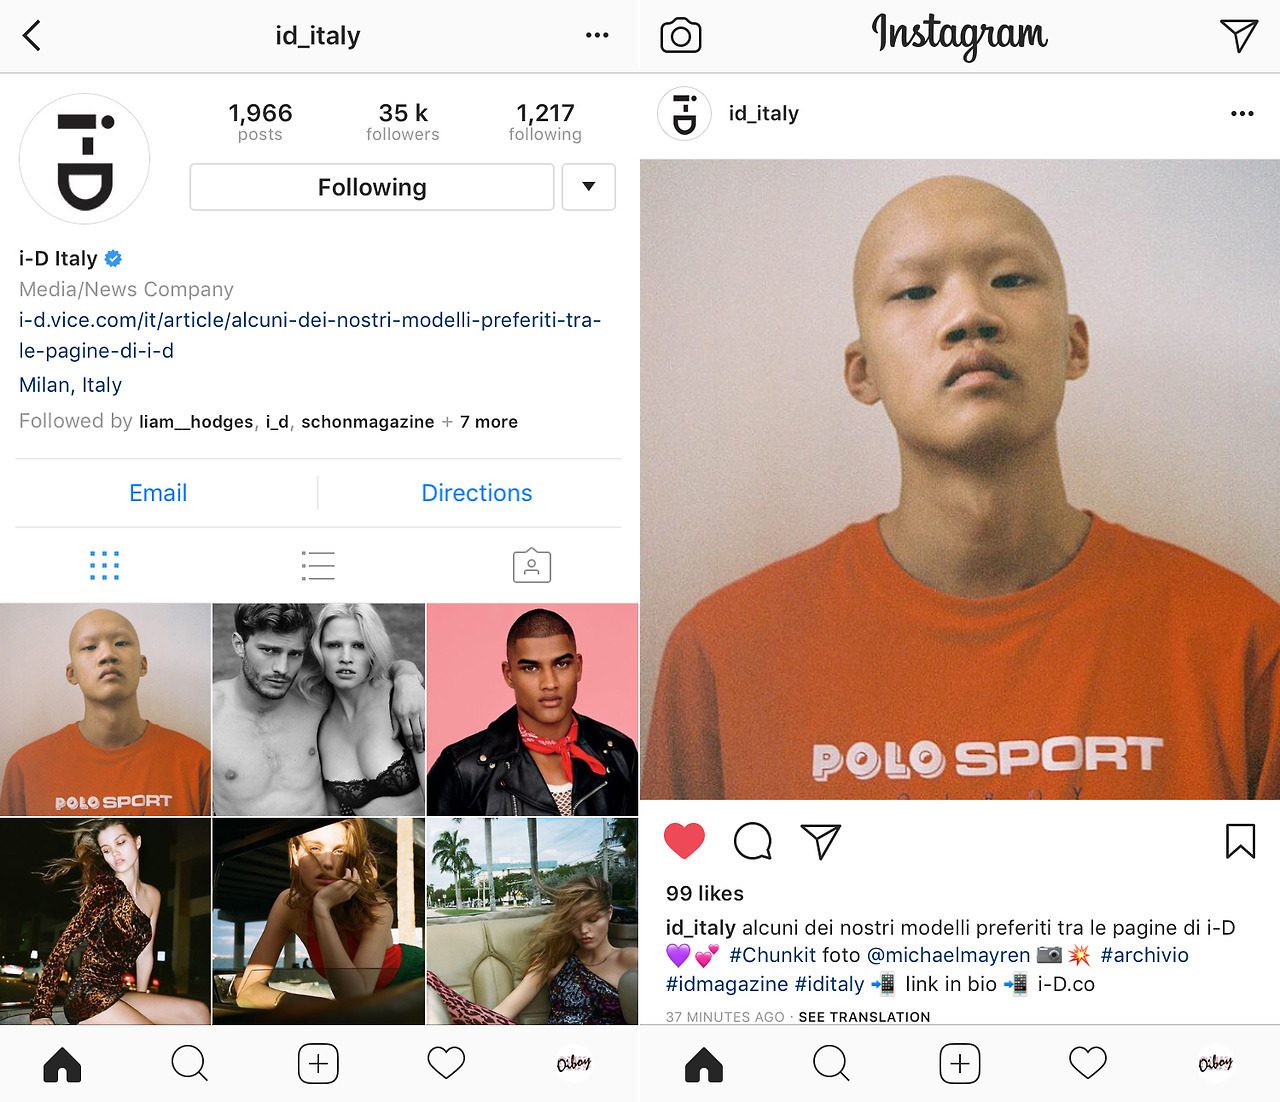 OUR NOW NON-SALE ITEM: THE OIBOY POLO (MINT) SPORT, RED LONG SLEEVED TEE IS FEATURED ON i-D MAGAZINE (ITALY) INSTAGRAM PAGE.